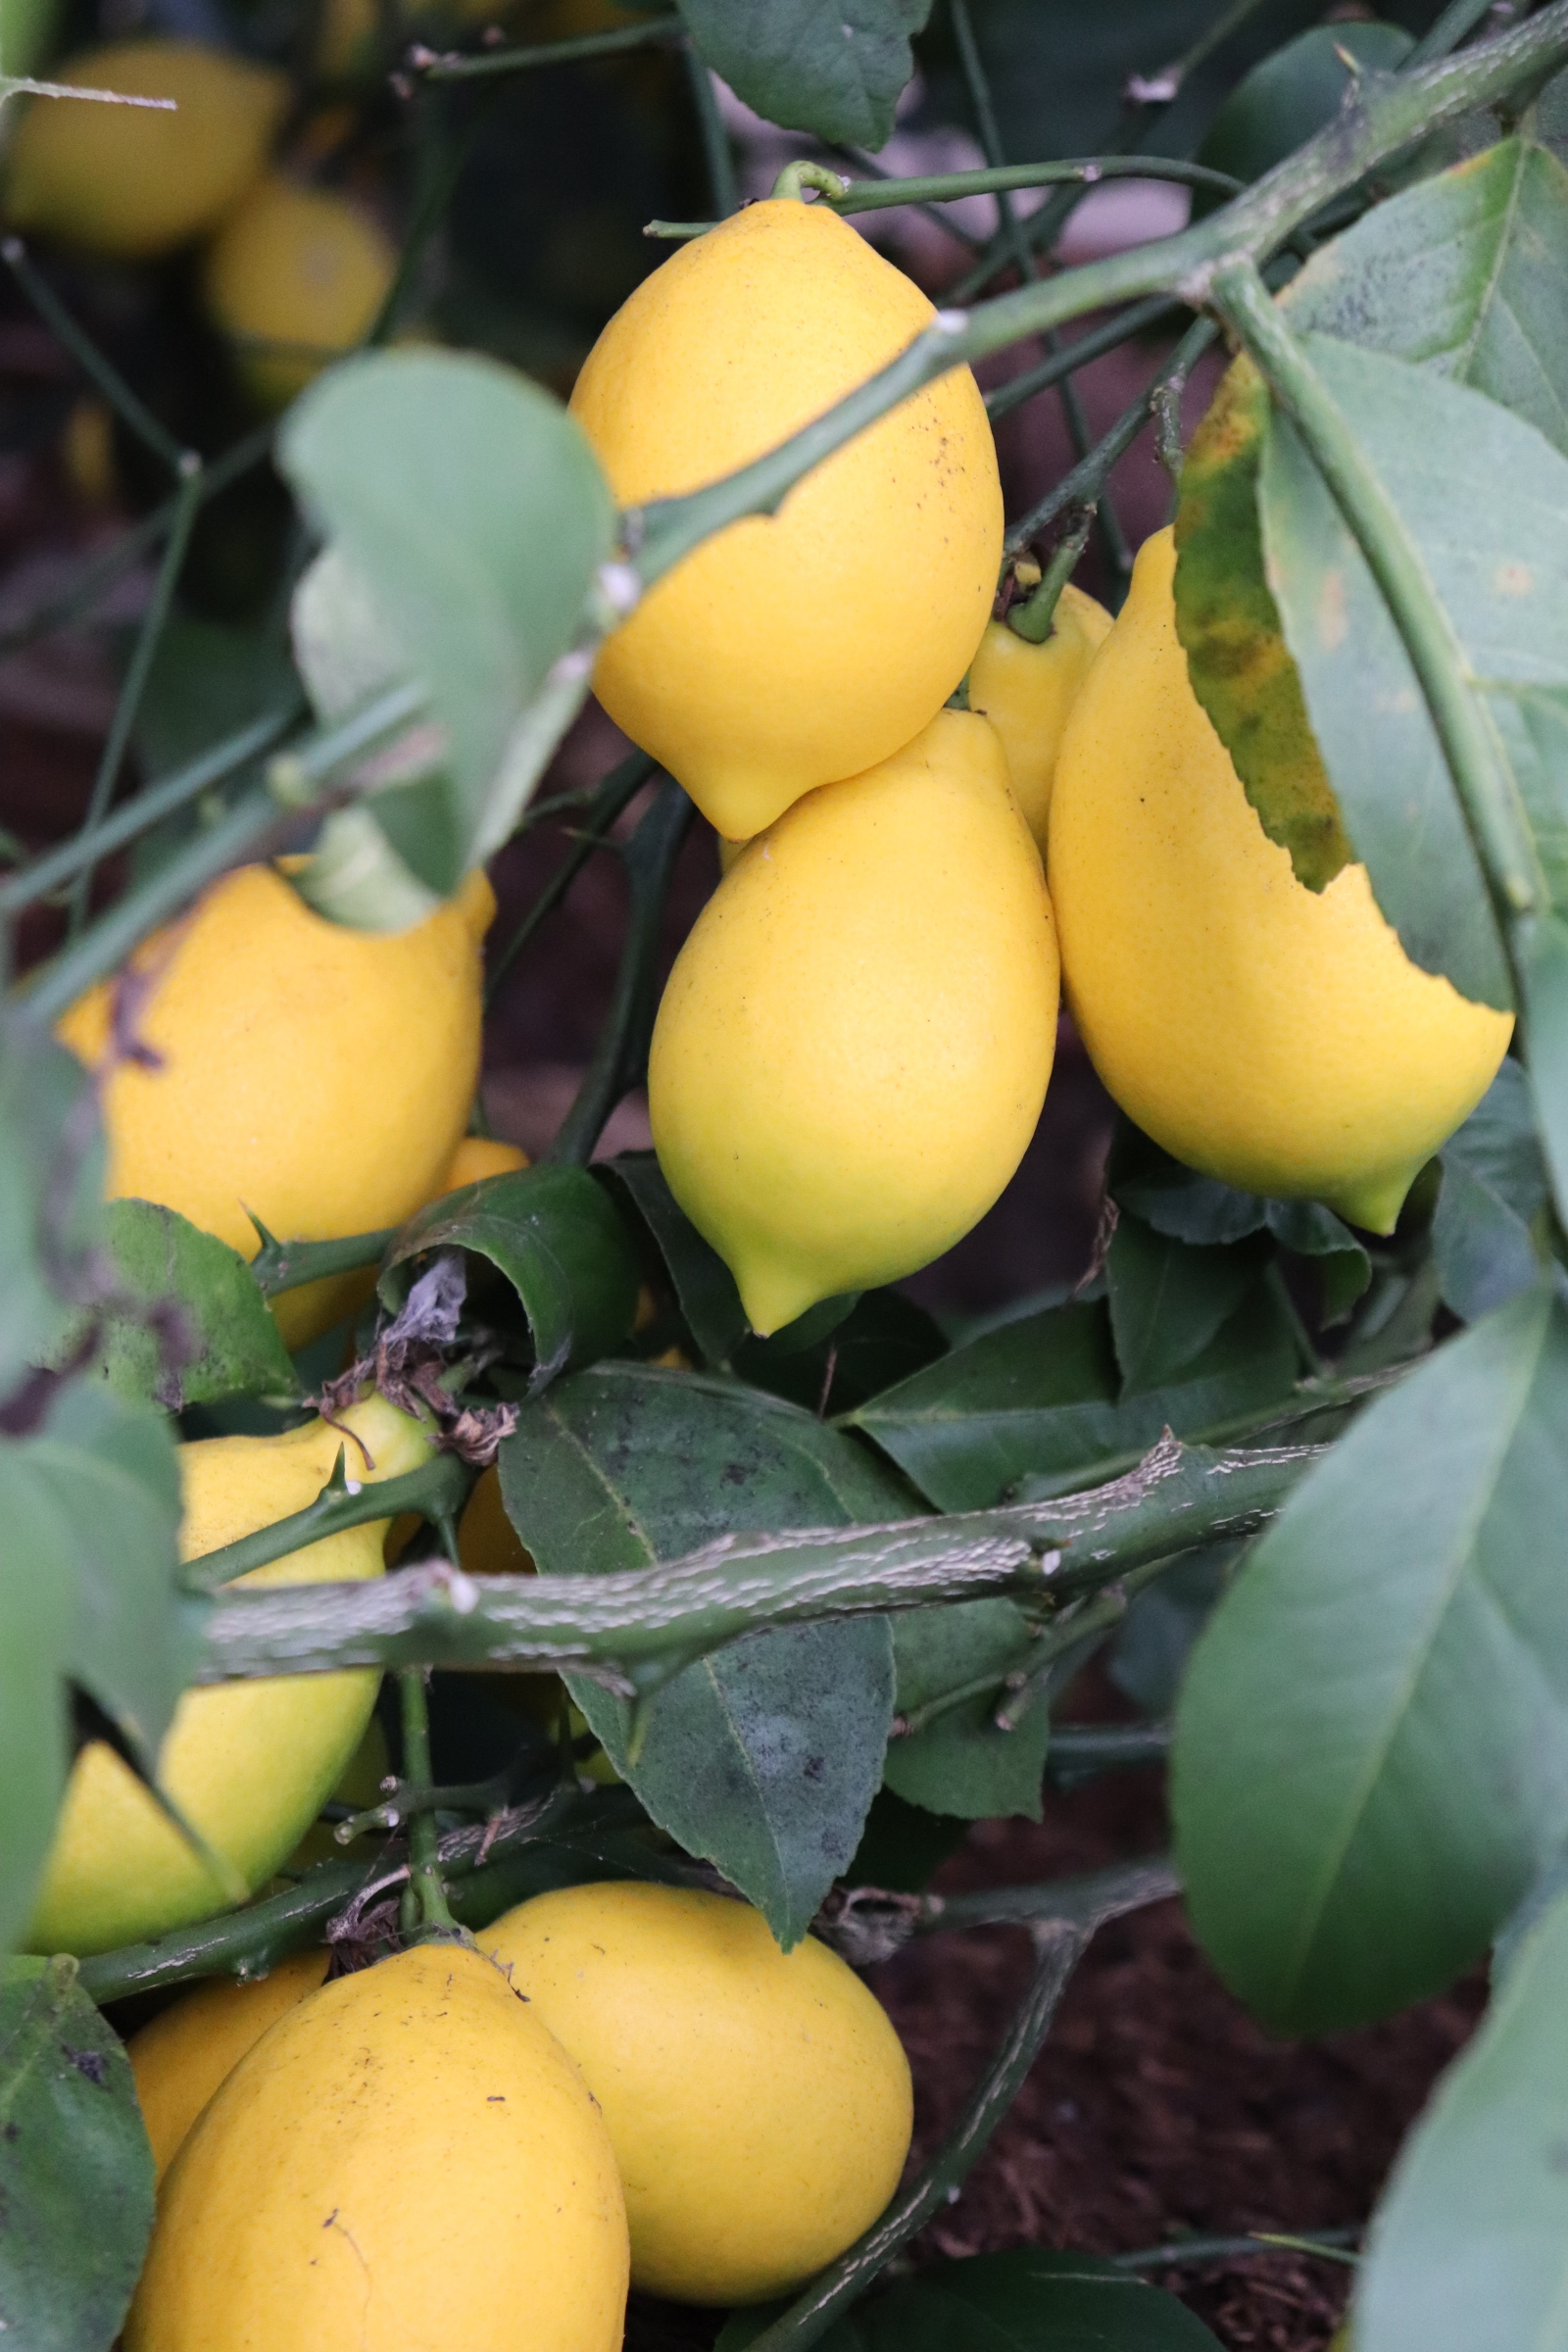 Gorgeous meyer lemons, ready for harvest